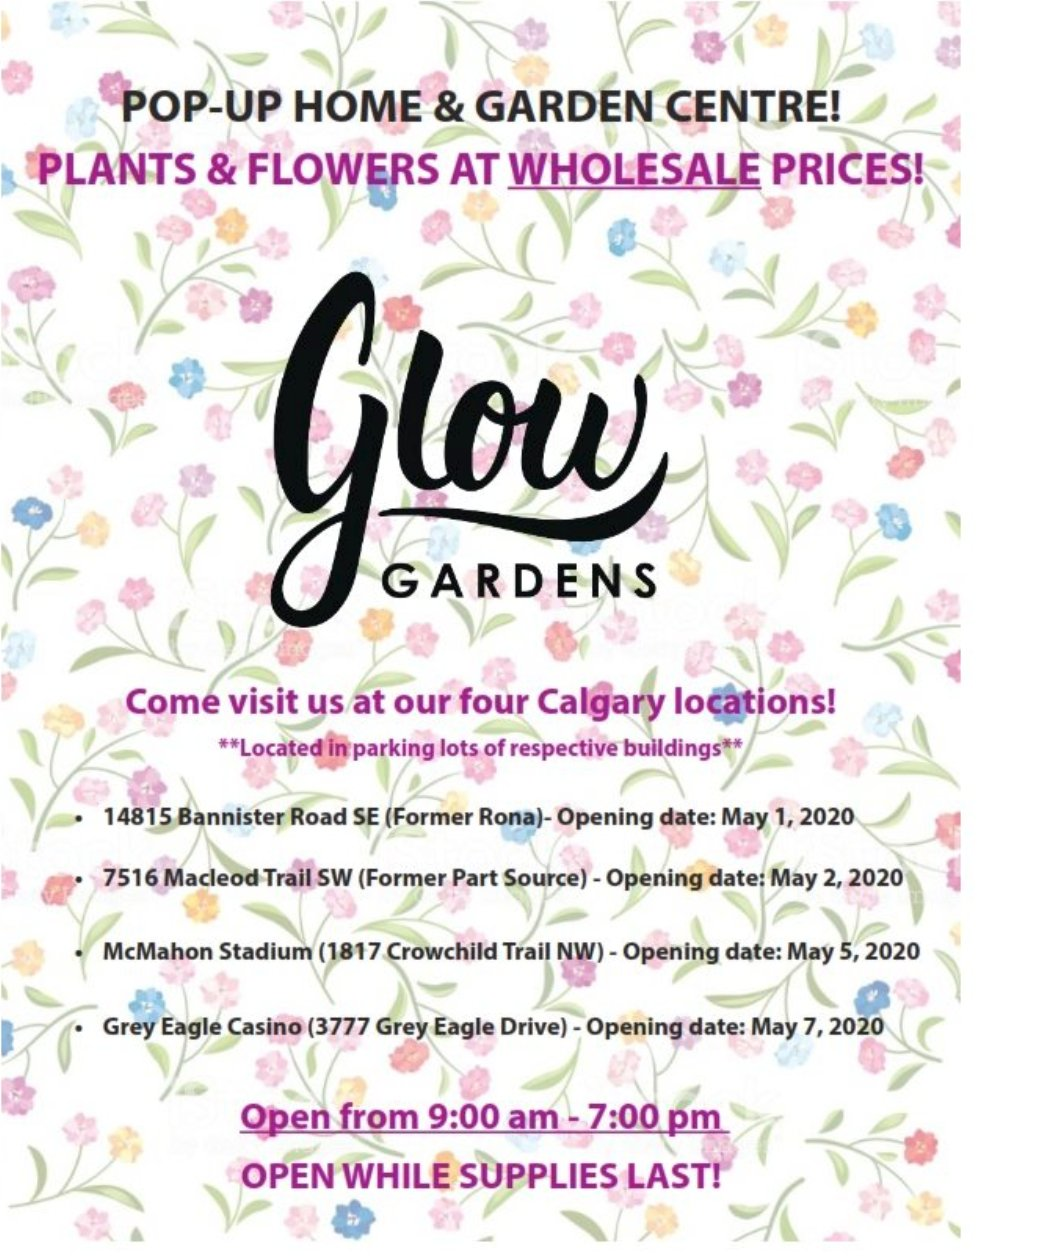 Mike Morrison On Twitter Glow Garden Is A Local Nursery That Had 20m Worth Of Inventory Canceled Due To Covid 19 So Now They Have Pop Up Garden Centres Around The City And Are Selling Everything For Wholesale We Just Checked It Out And Prices